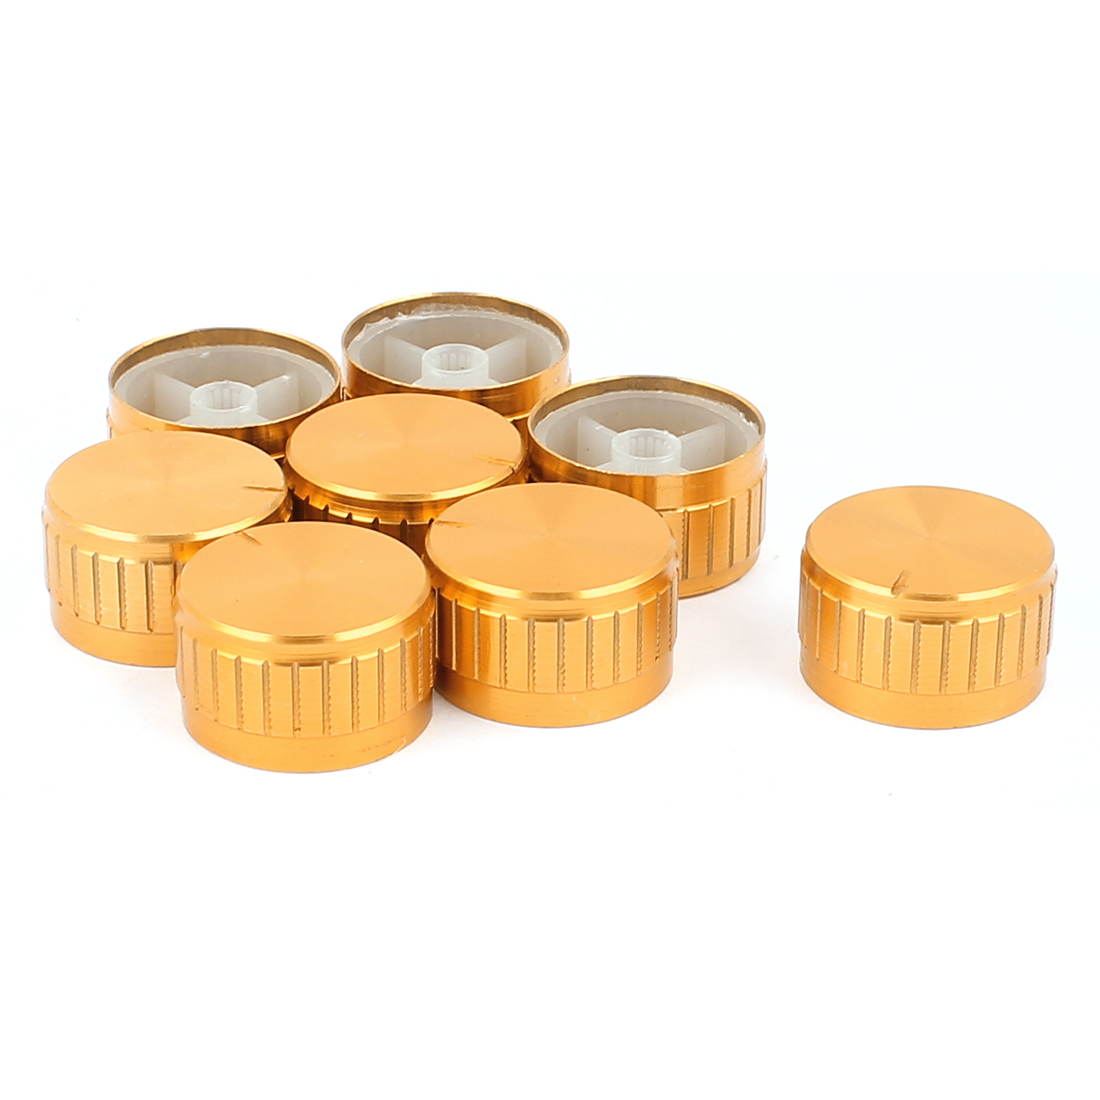 8 Pcs 30mm x 6mm Aluminium Alloy Potentiometer Control Switch Volume Cap Knurled Button Gold Tone